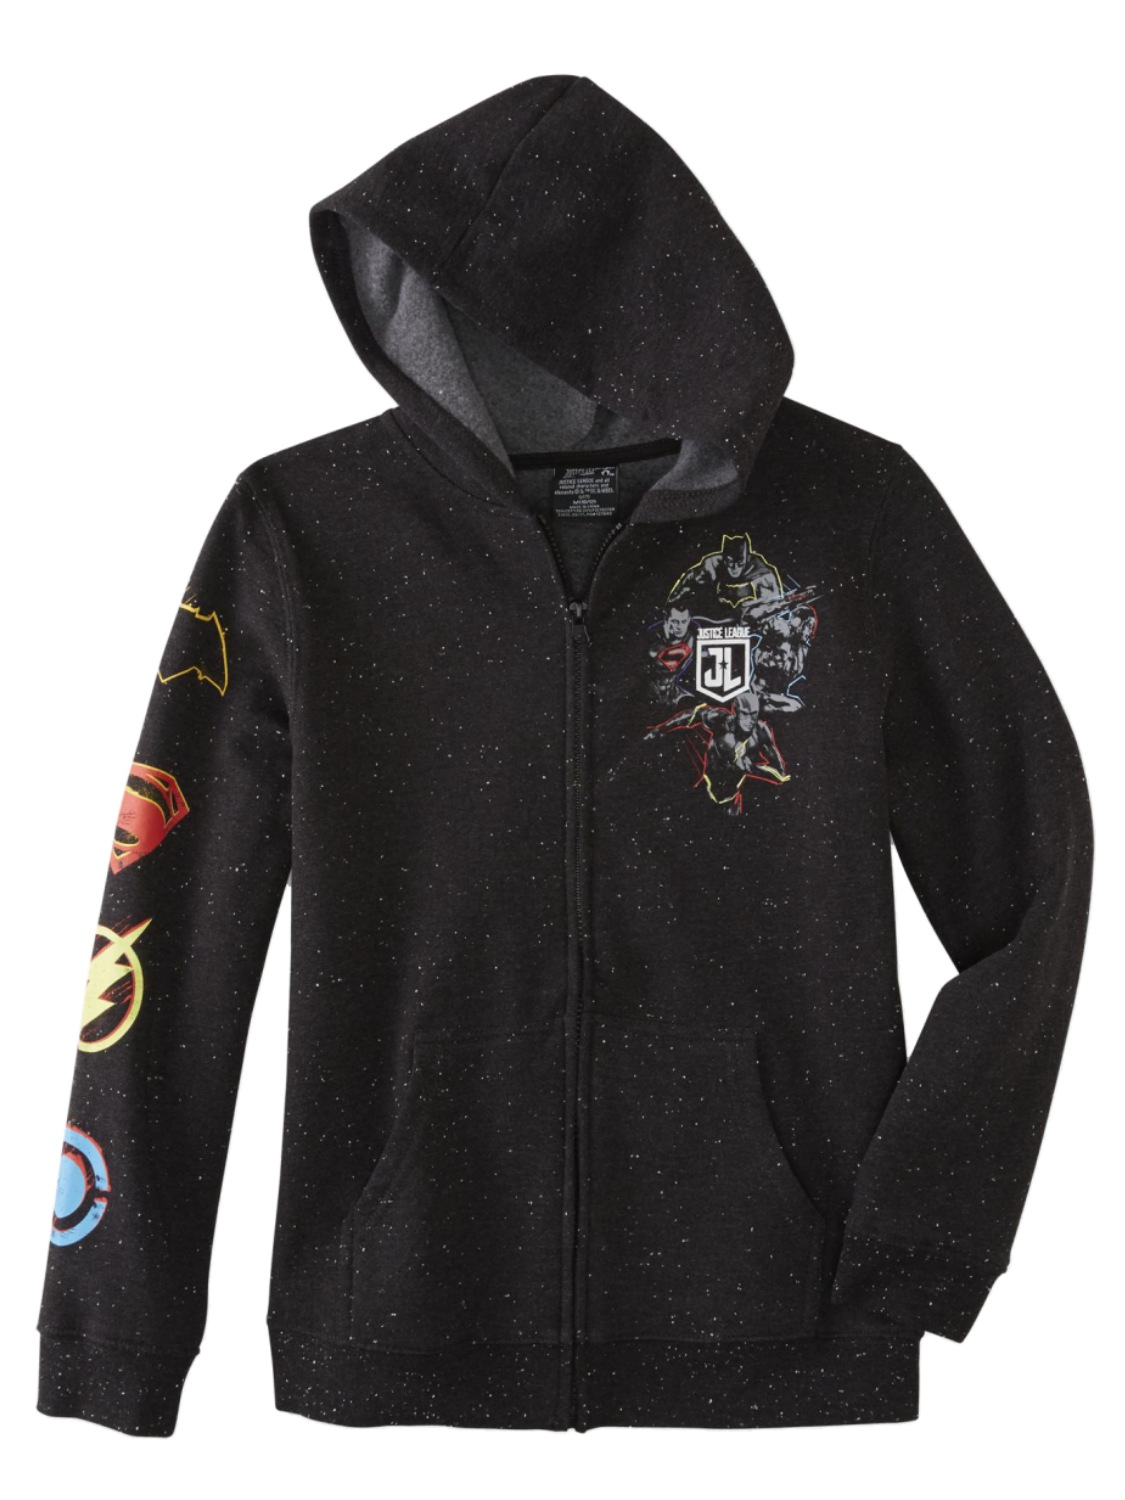 Justice League DC Comics Boys Black Speckled Zip Hoodie Sweatshirt